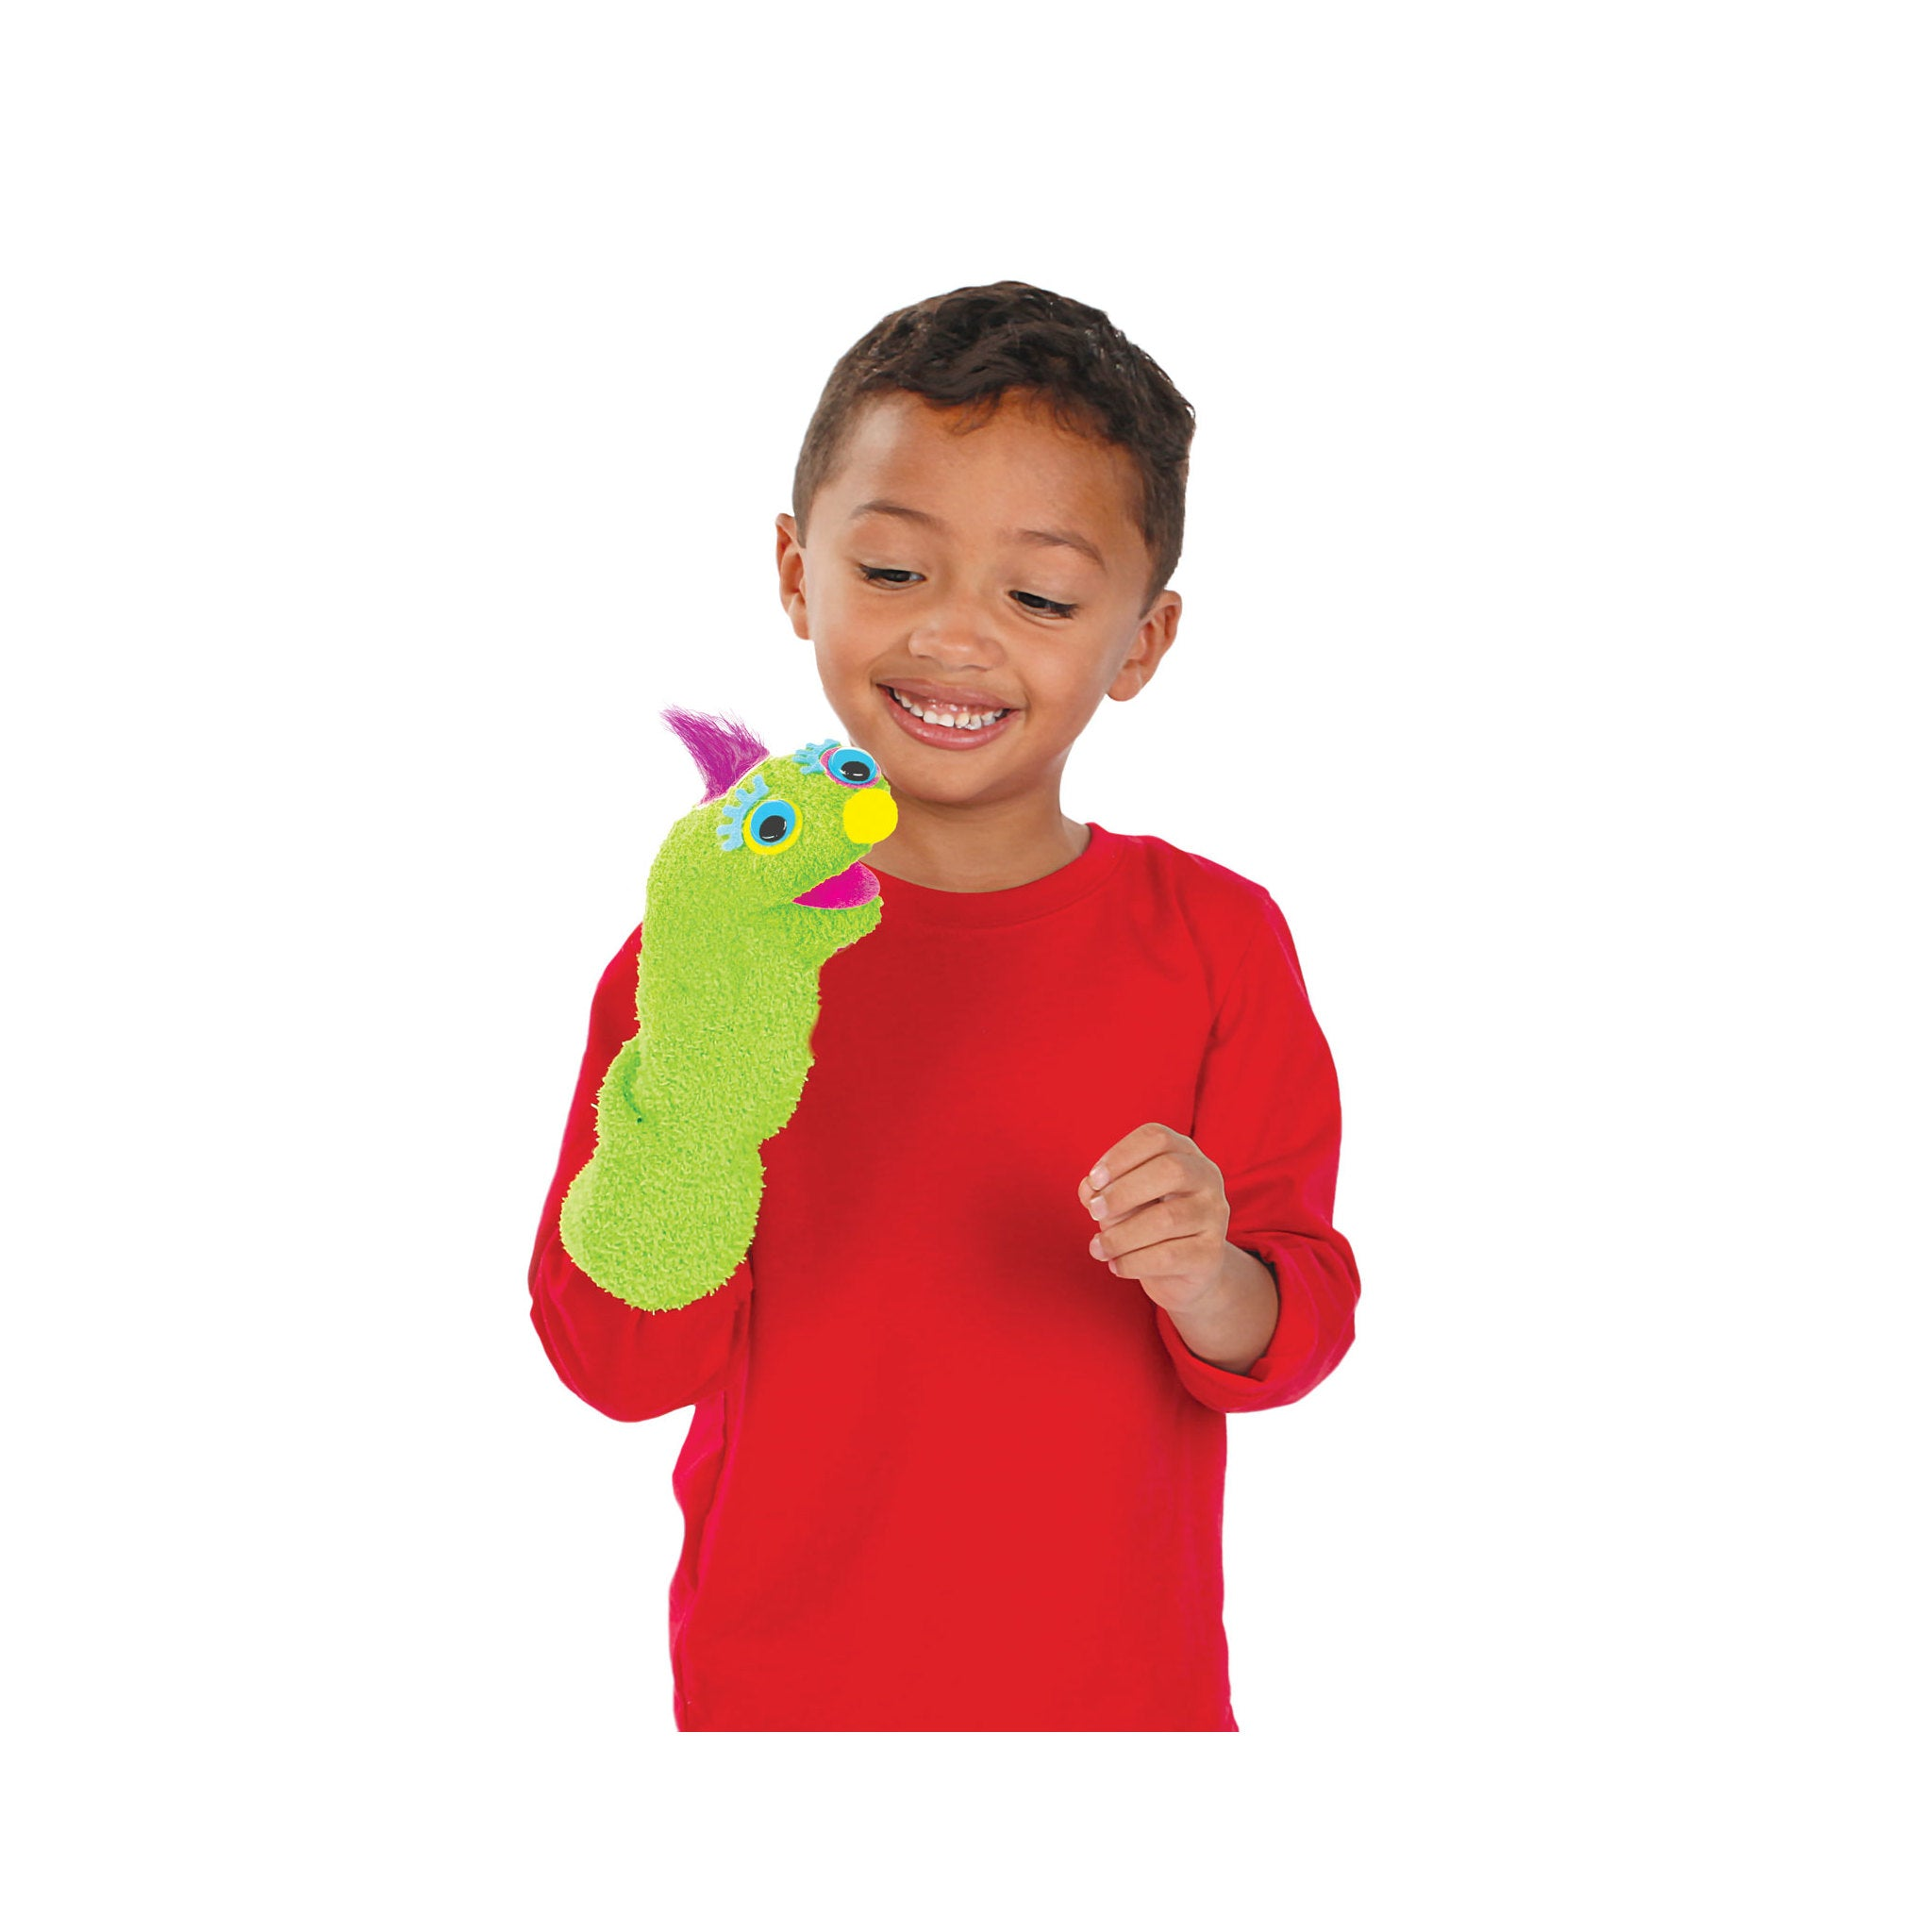 Make Your Own Sock Puppets - #1616000 – Faber-Castell USA